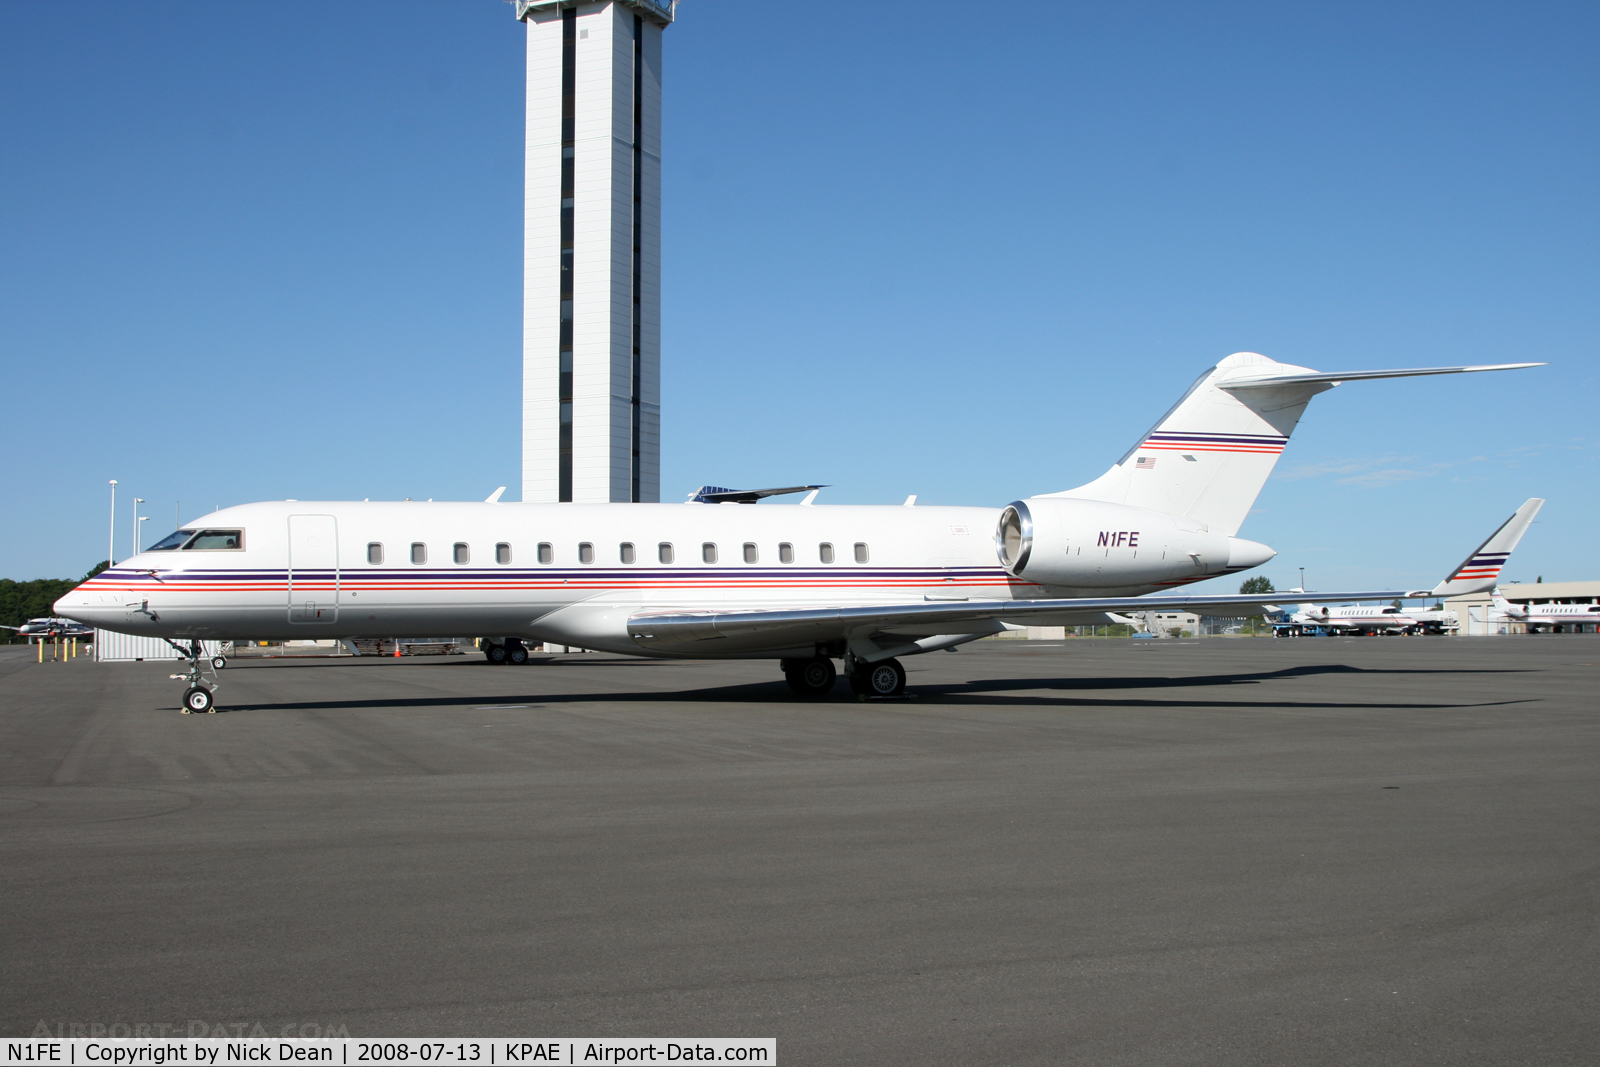 N1FE, 2001 Bombardier BD-700-1A10 Global Express C/N 9091, Visitor